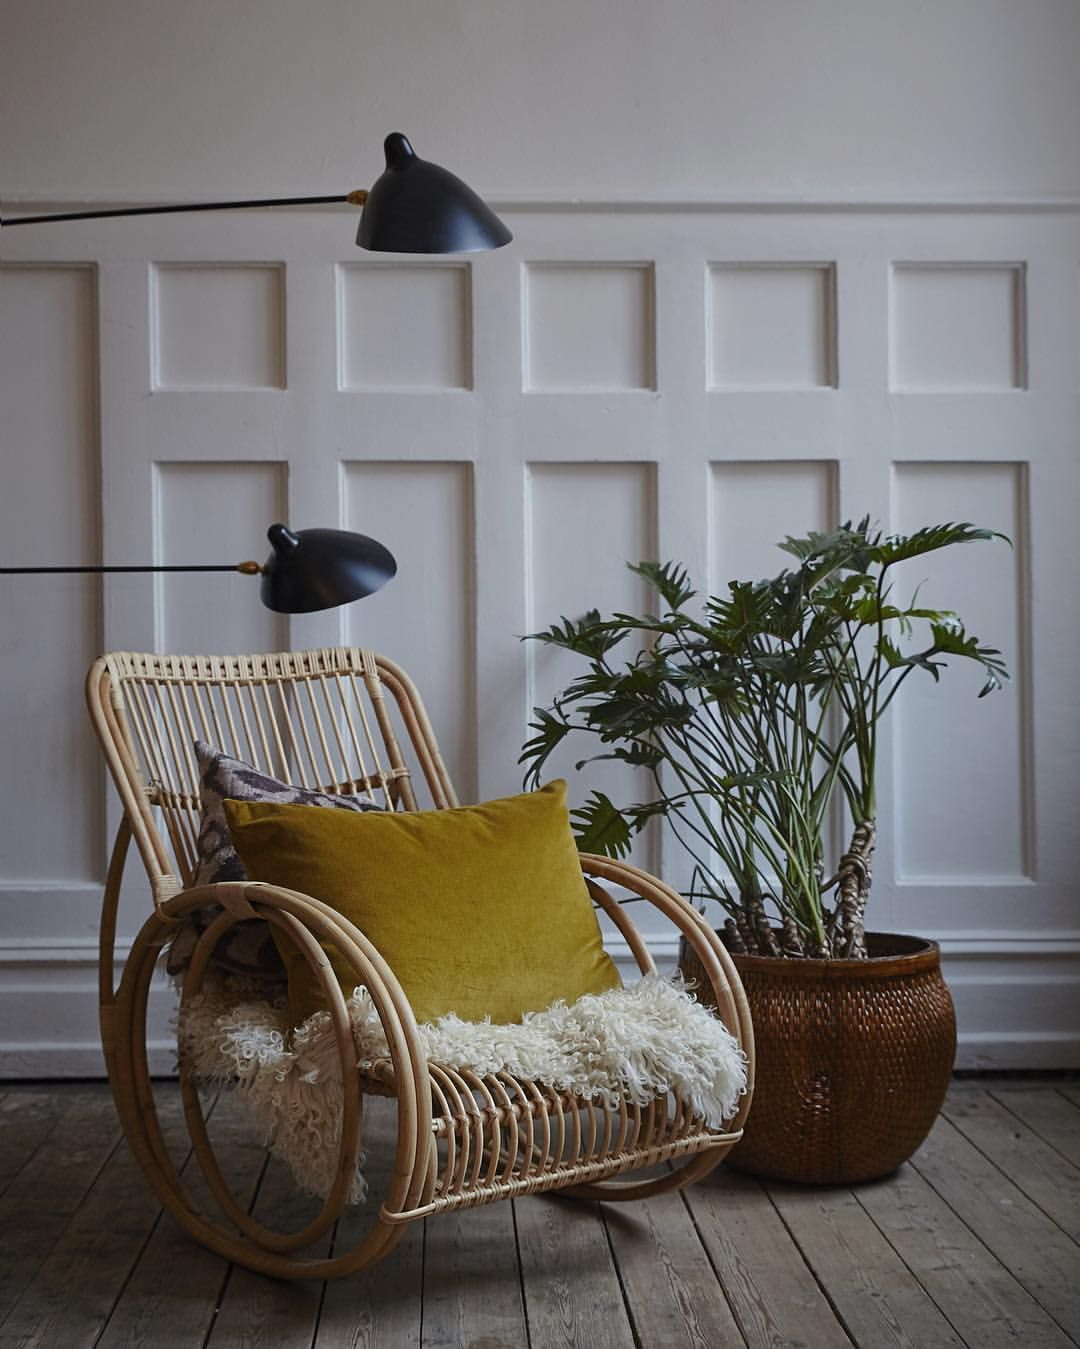 love the chair & lamp............. (With images) | Rattan ... on Decorative Wall Sconces Non Electric Lights For Closets id=75063